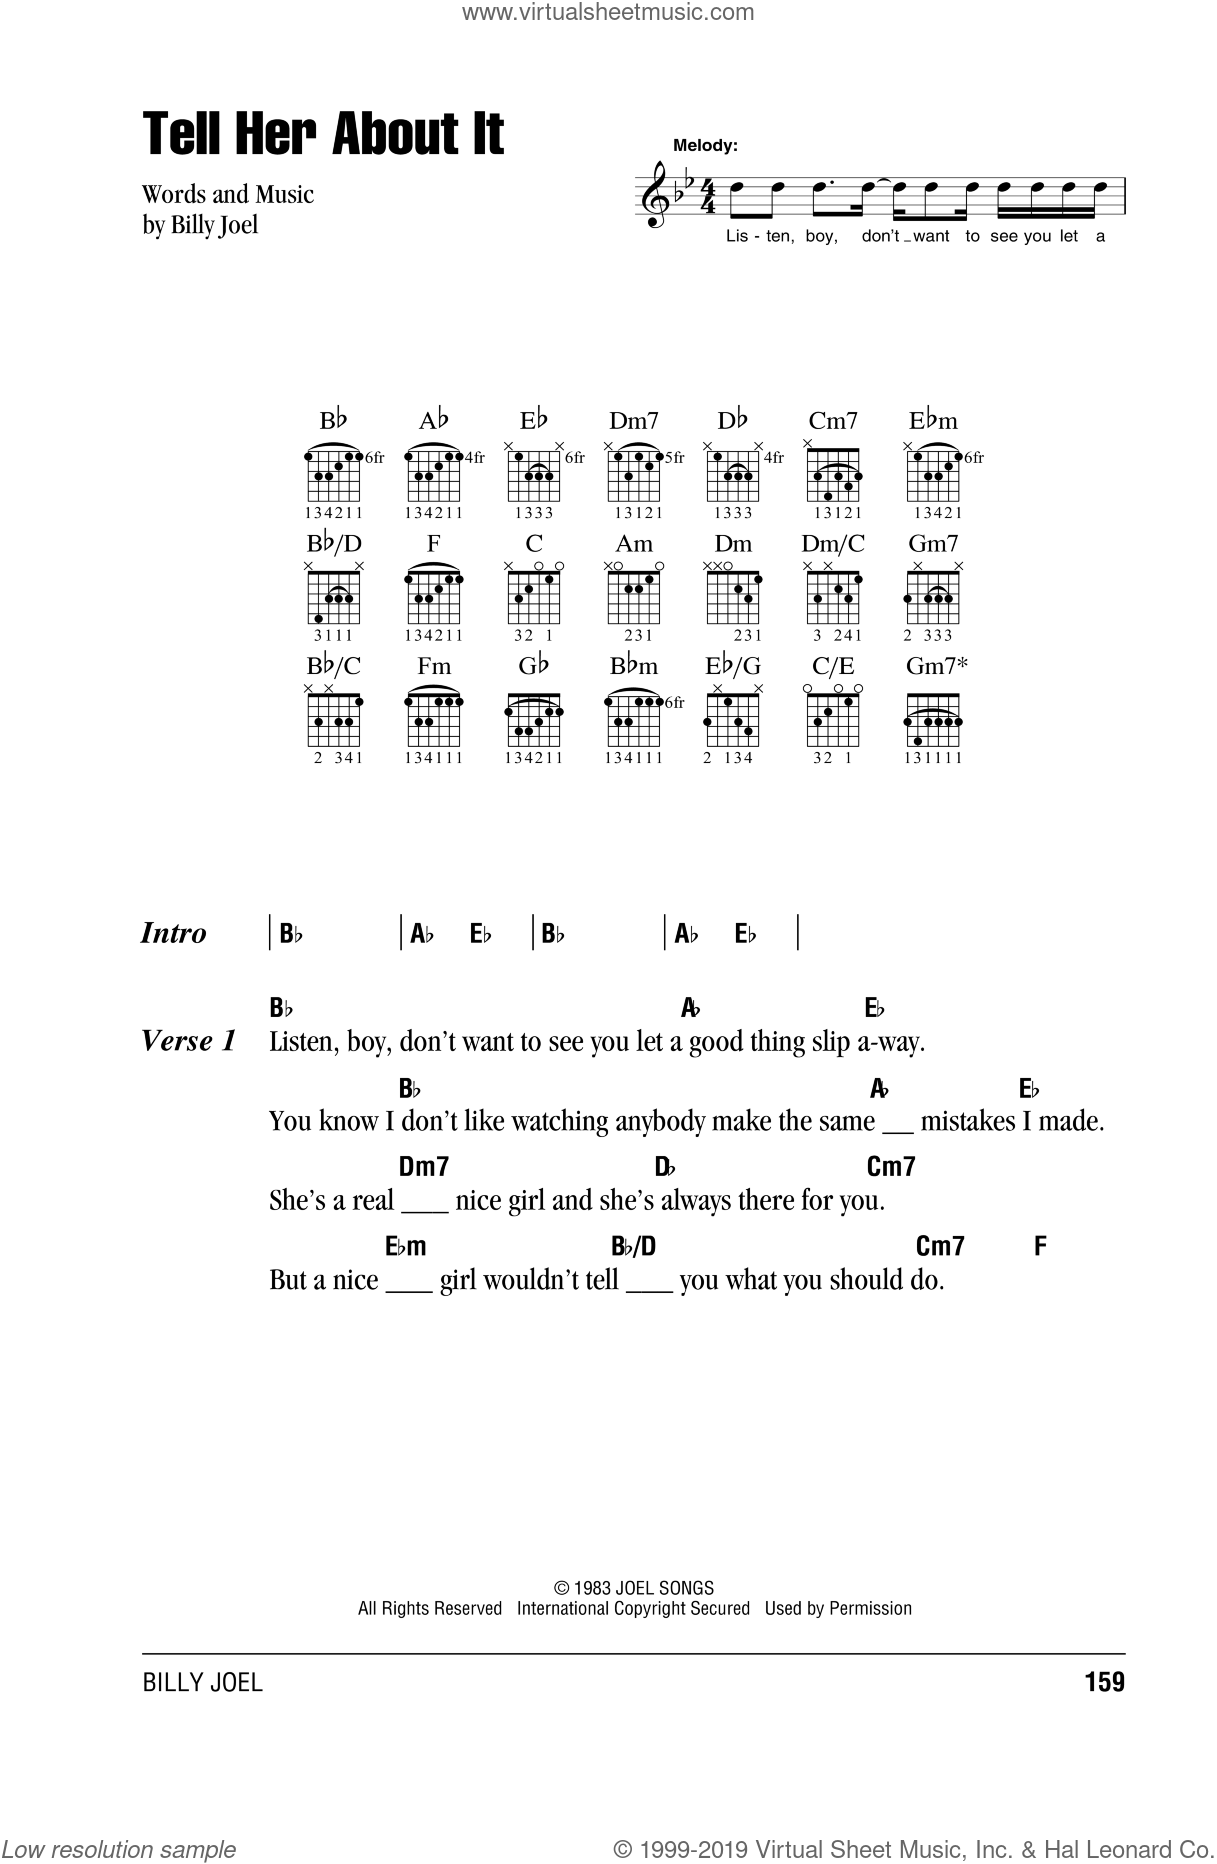 Tell Her About It sheet music for guitar (chords) by Billy Joel, intermediate skill level